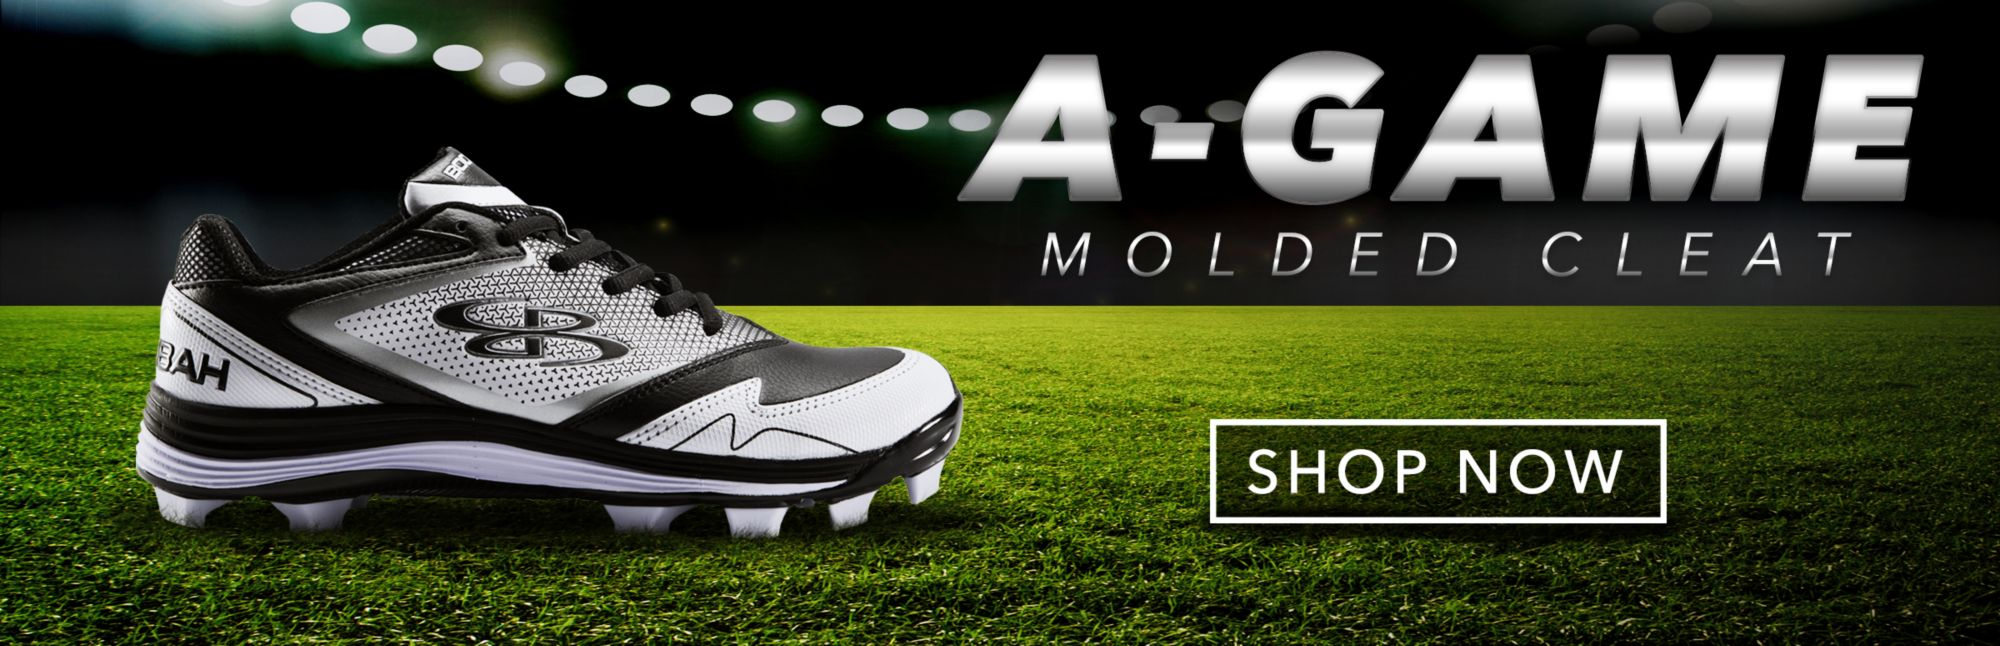 Boombah A Game Molded Cleats